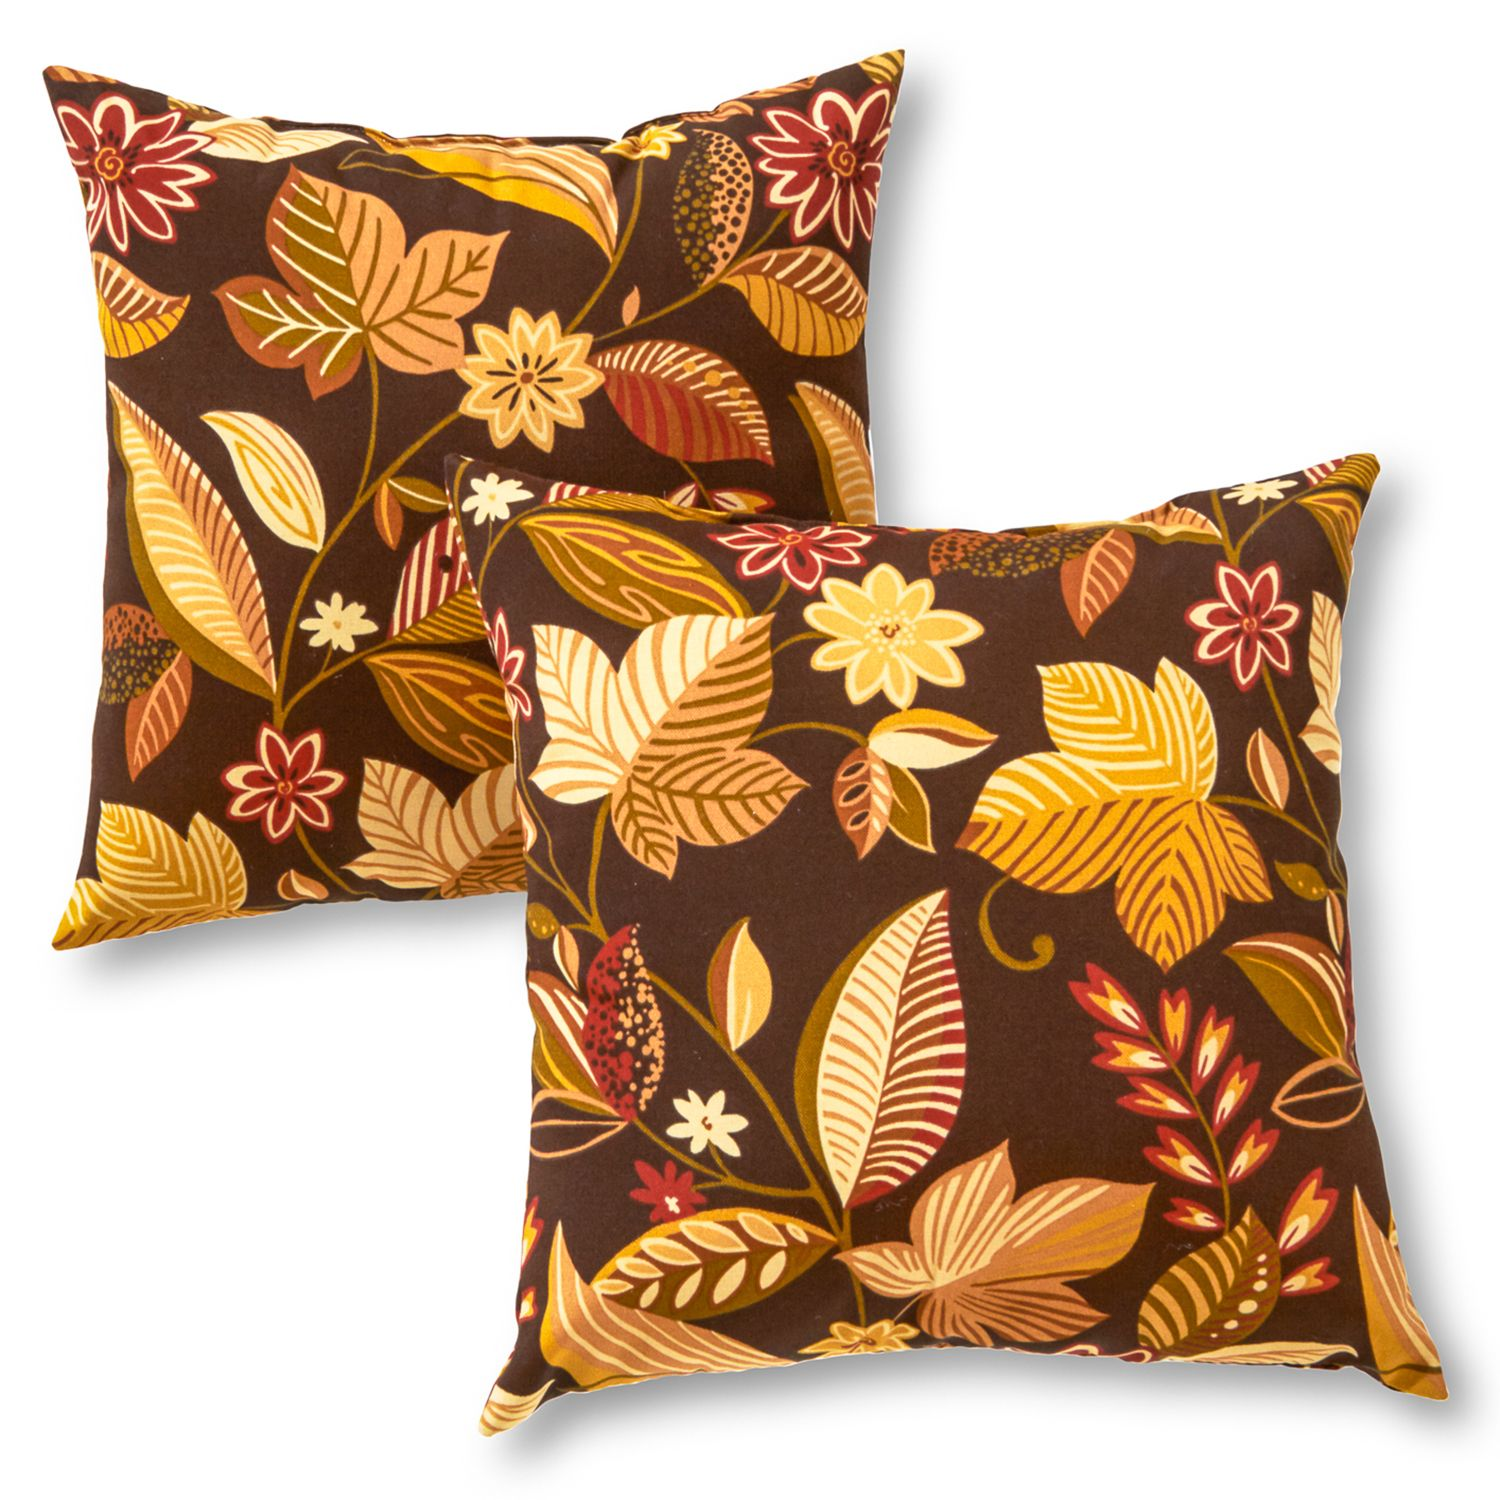 Square Outdoor Decorative Pillows